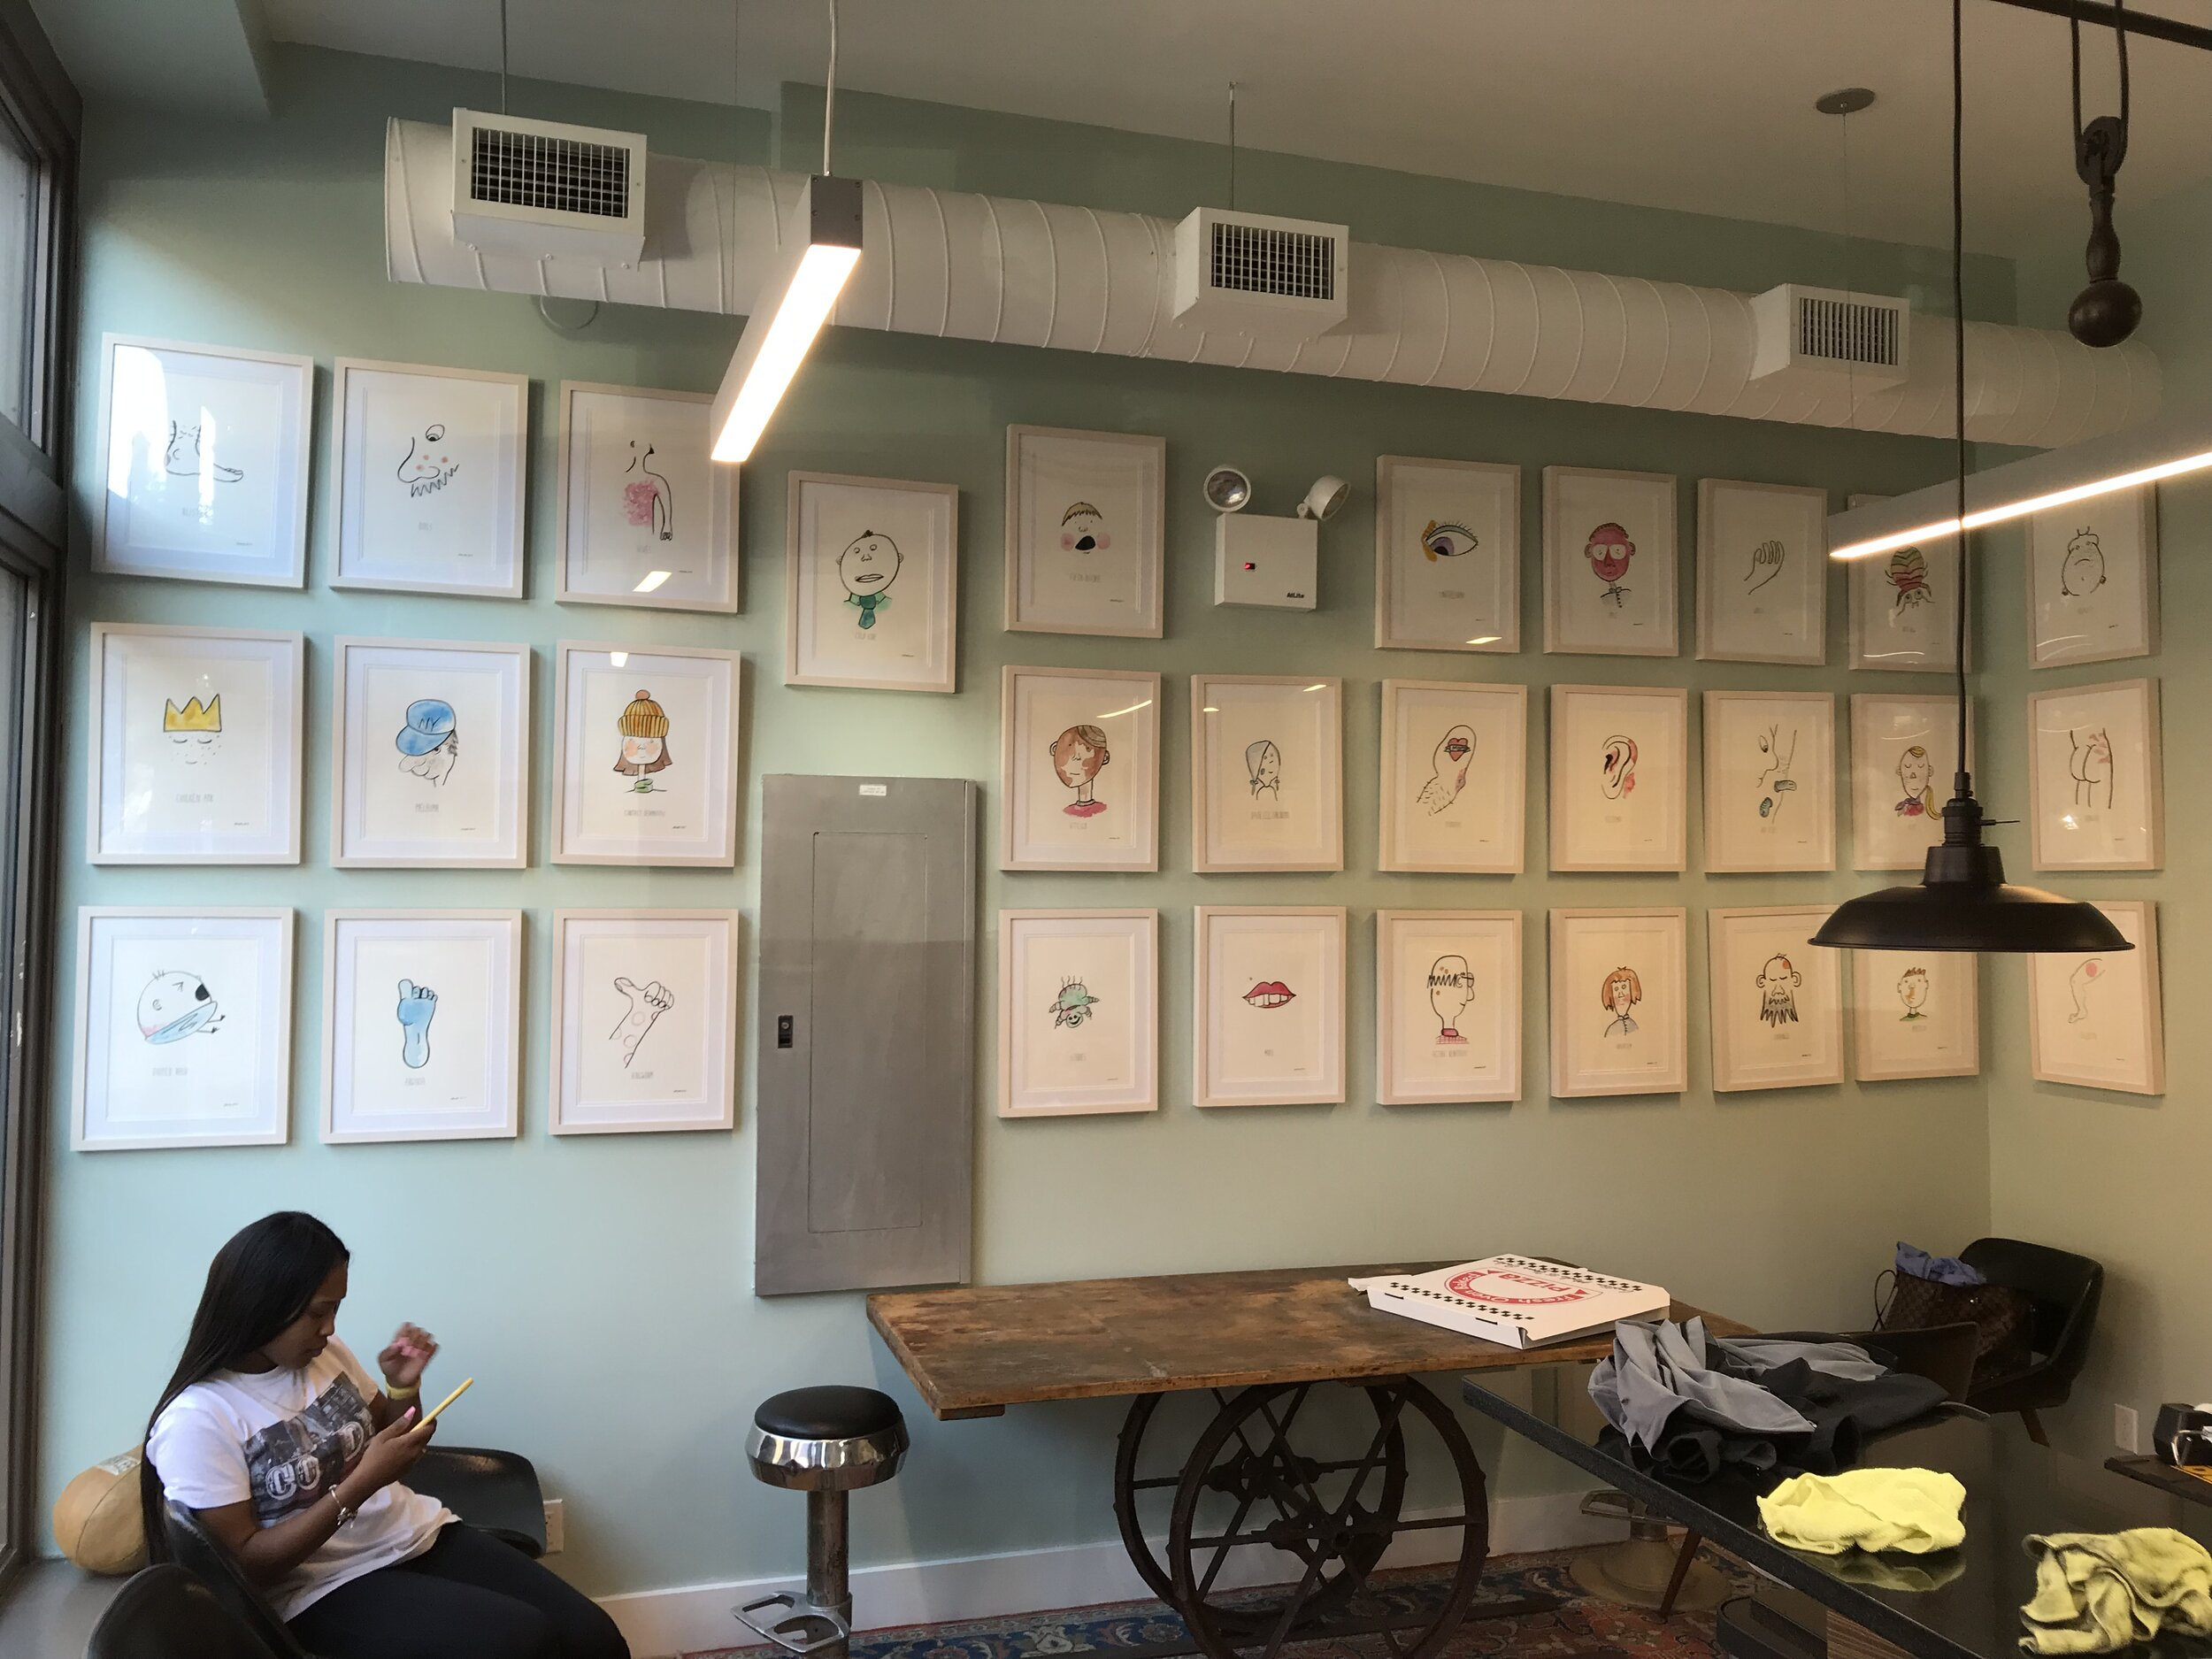 Dermatology Specialists - The Dermatolgy Specialists - A dermatology office in Greenpoint Brooklyn commissioned 30 paintings of various skin situations